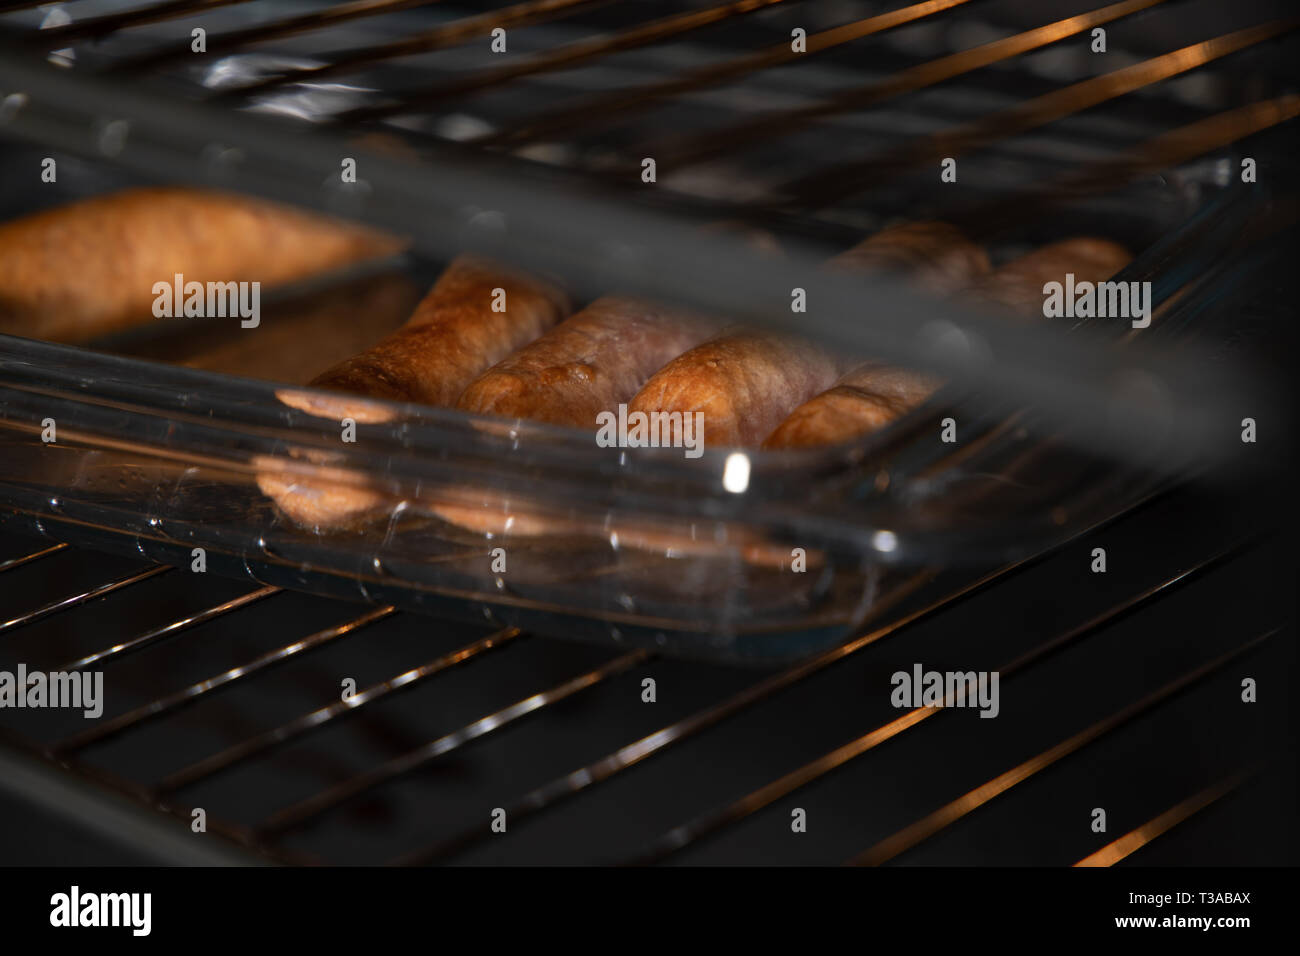 sausages in the oven - Stock Image